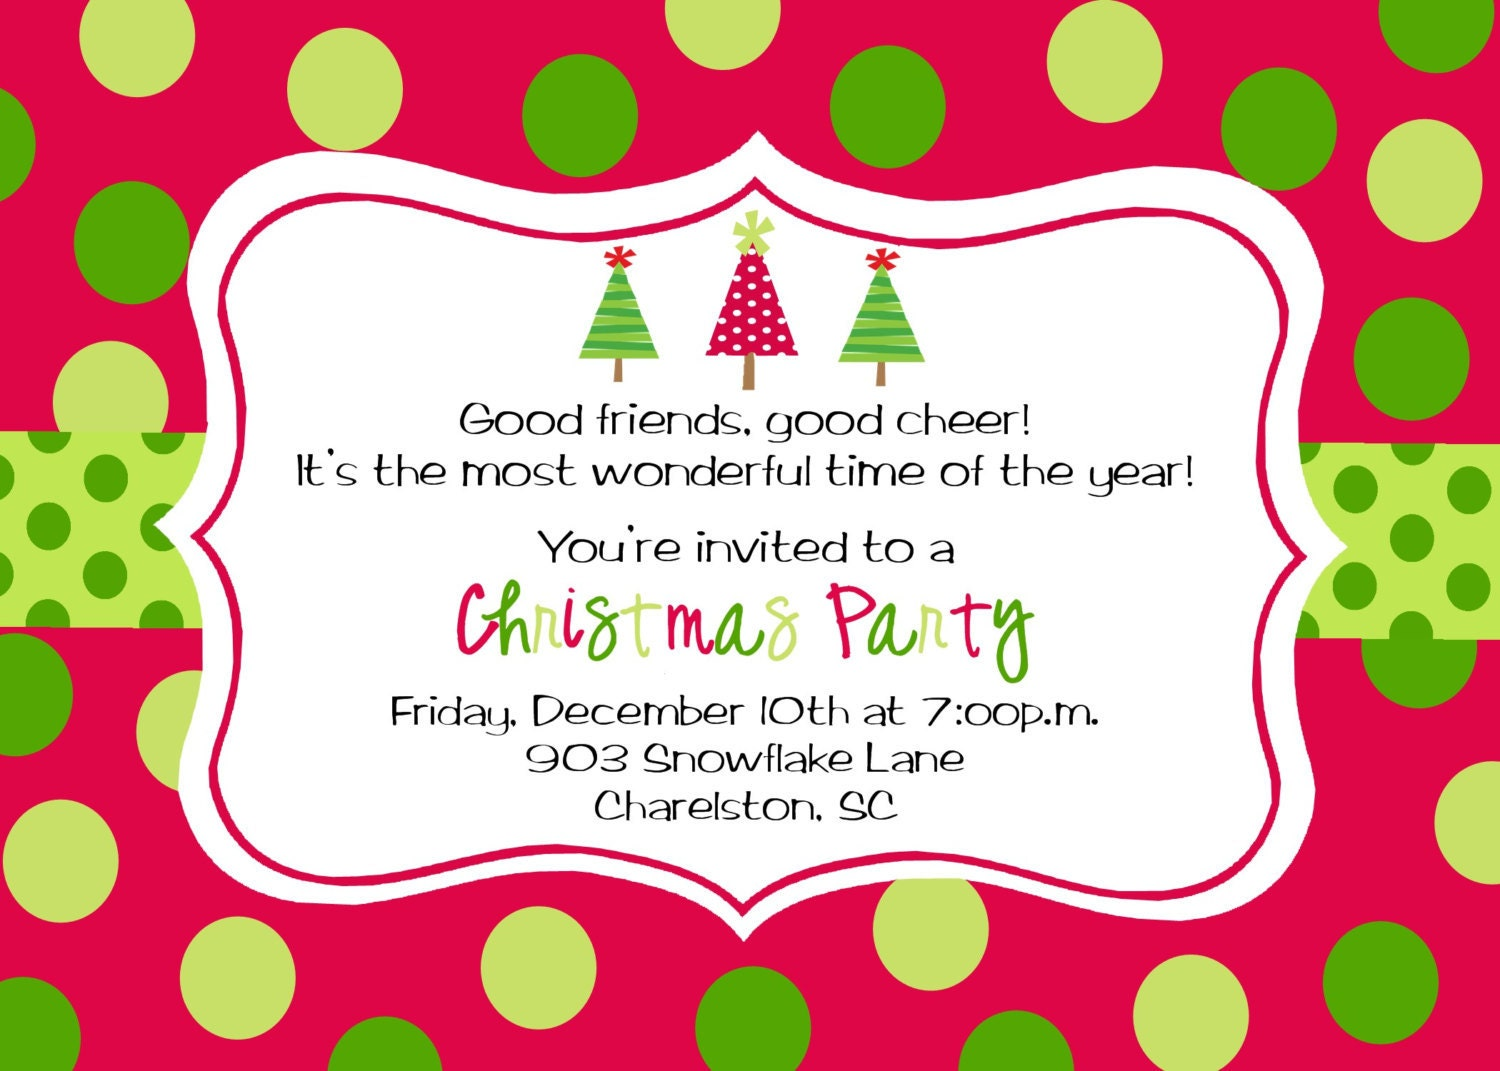 Christmas Party Invitations – Invitations for Christmas Party